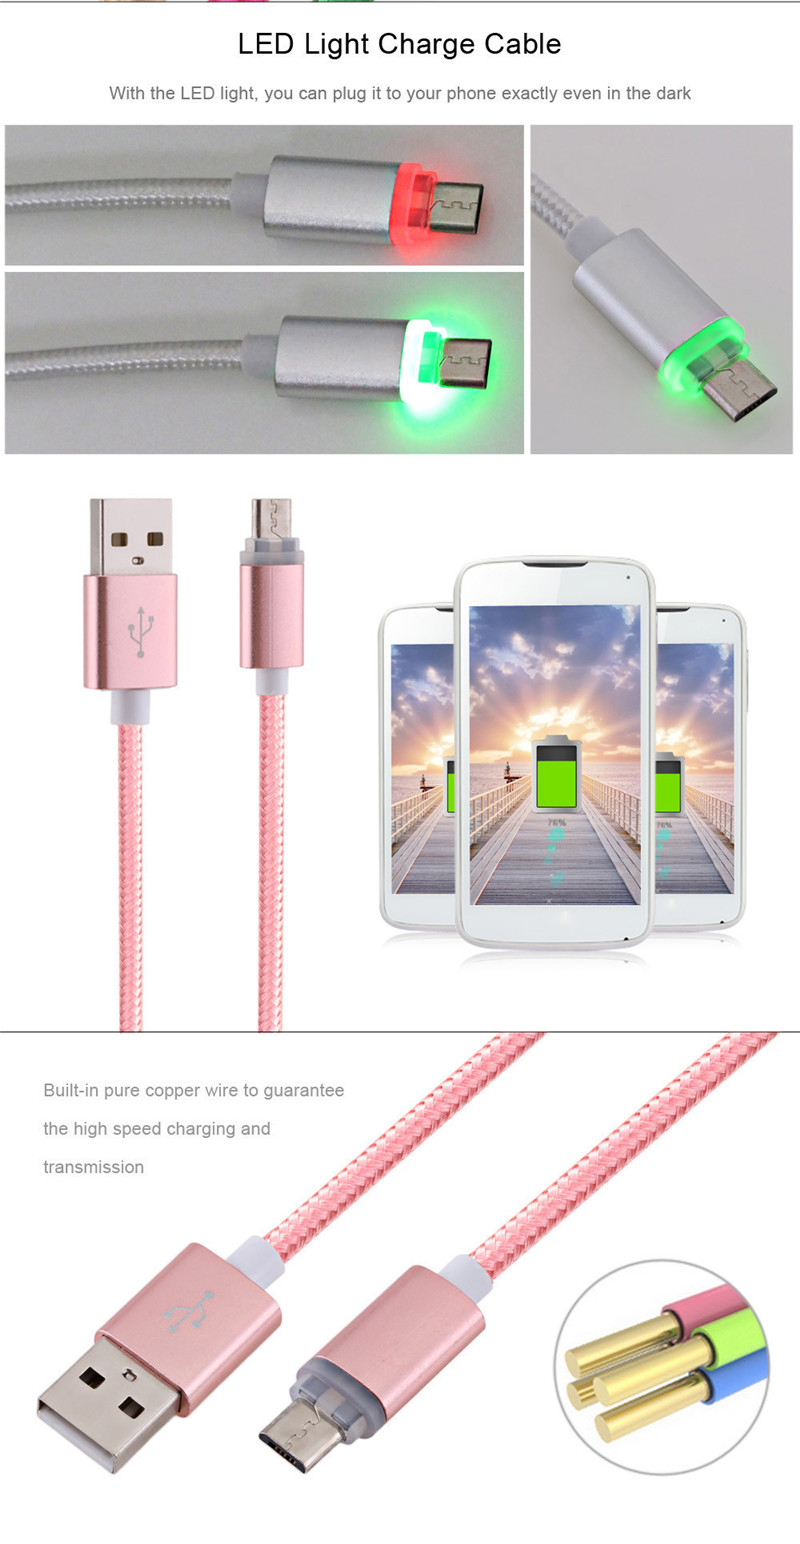 1M Nylon Braided LED Light Cable for Android